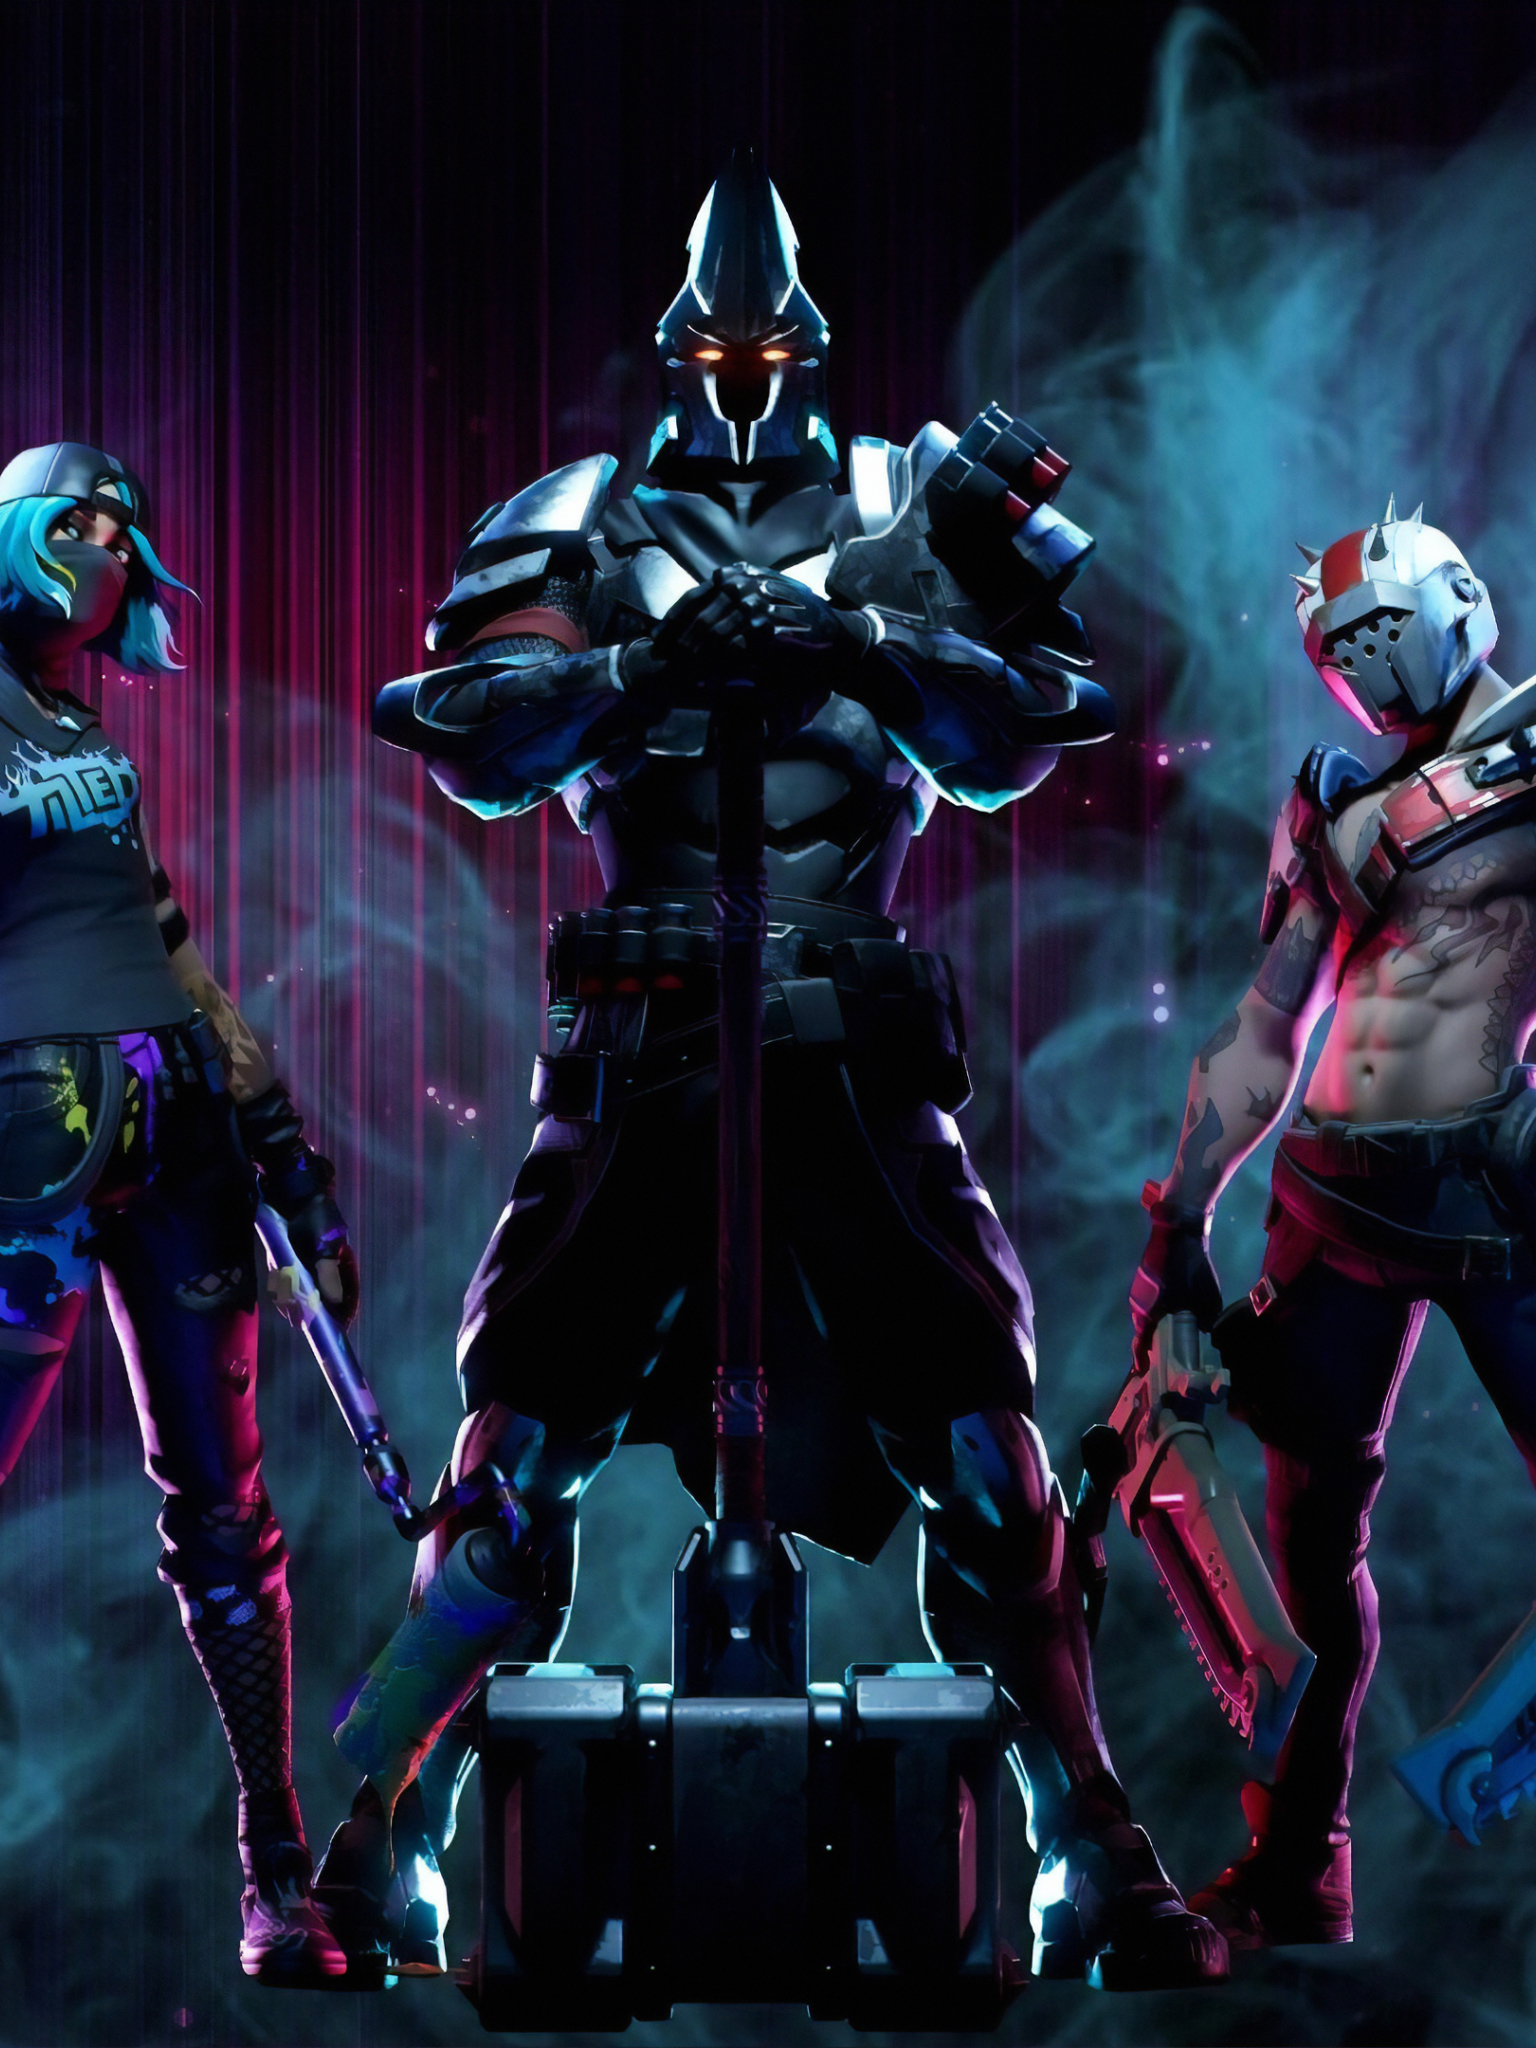 1536x2048 4k Fortnite Mobile 1536x2048 Resolution Wallpaper Hd Games 4k Wallpapers Images Photos And Background